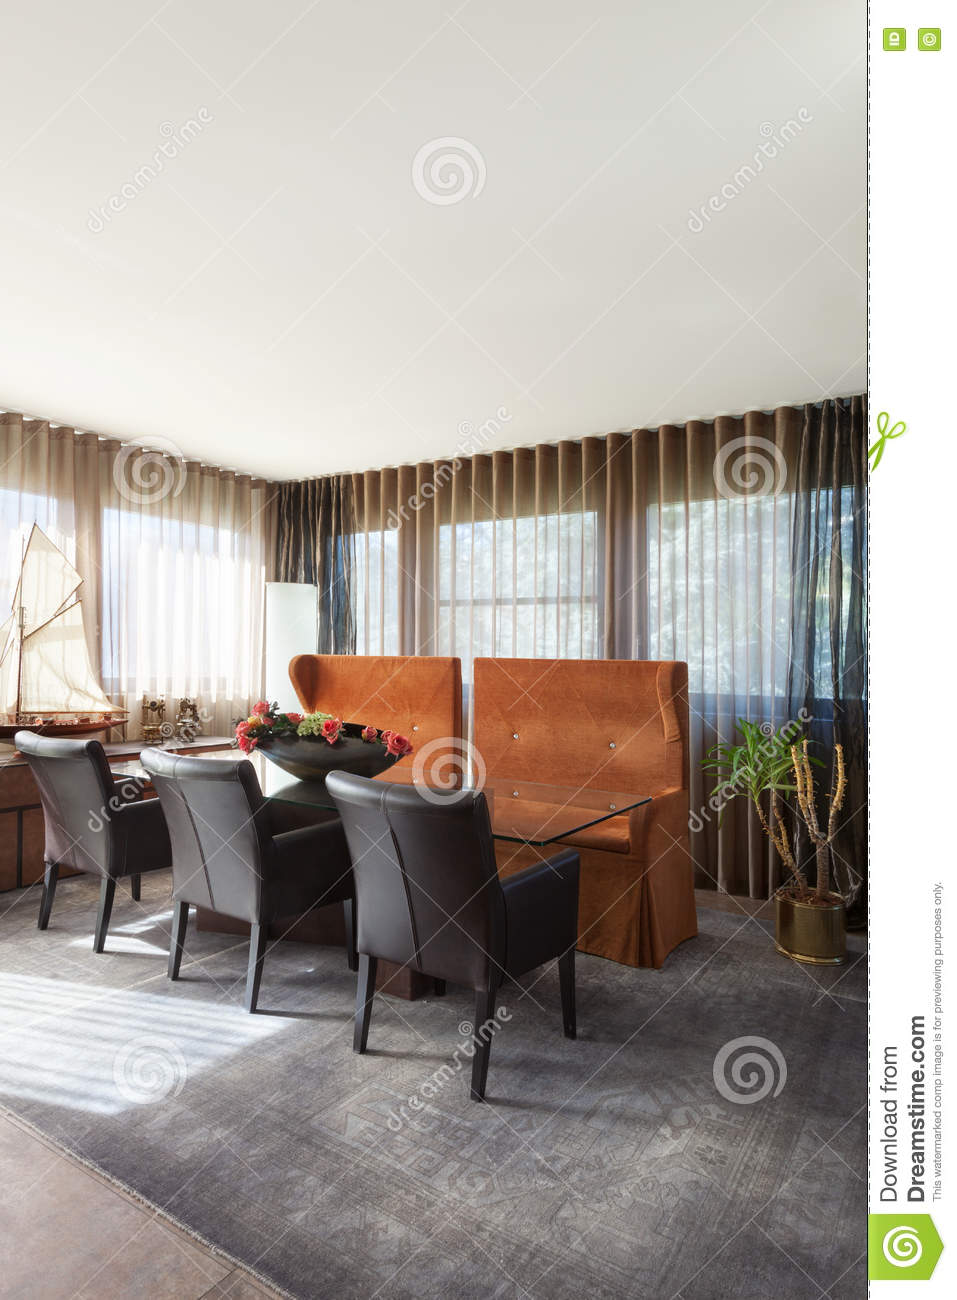 Teppich Esszimmer Esszimmer Teppich Awesome Munich Armchairs Und Munich Table Im